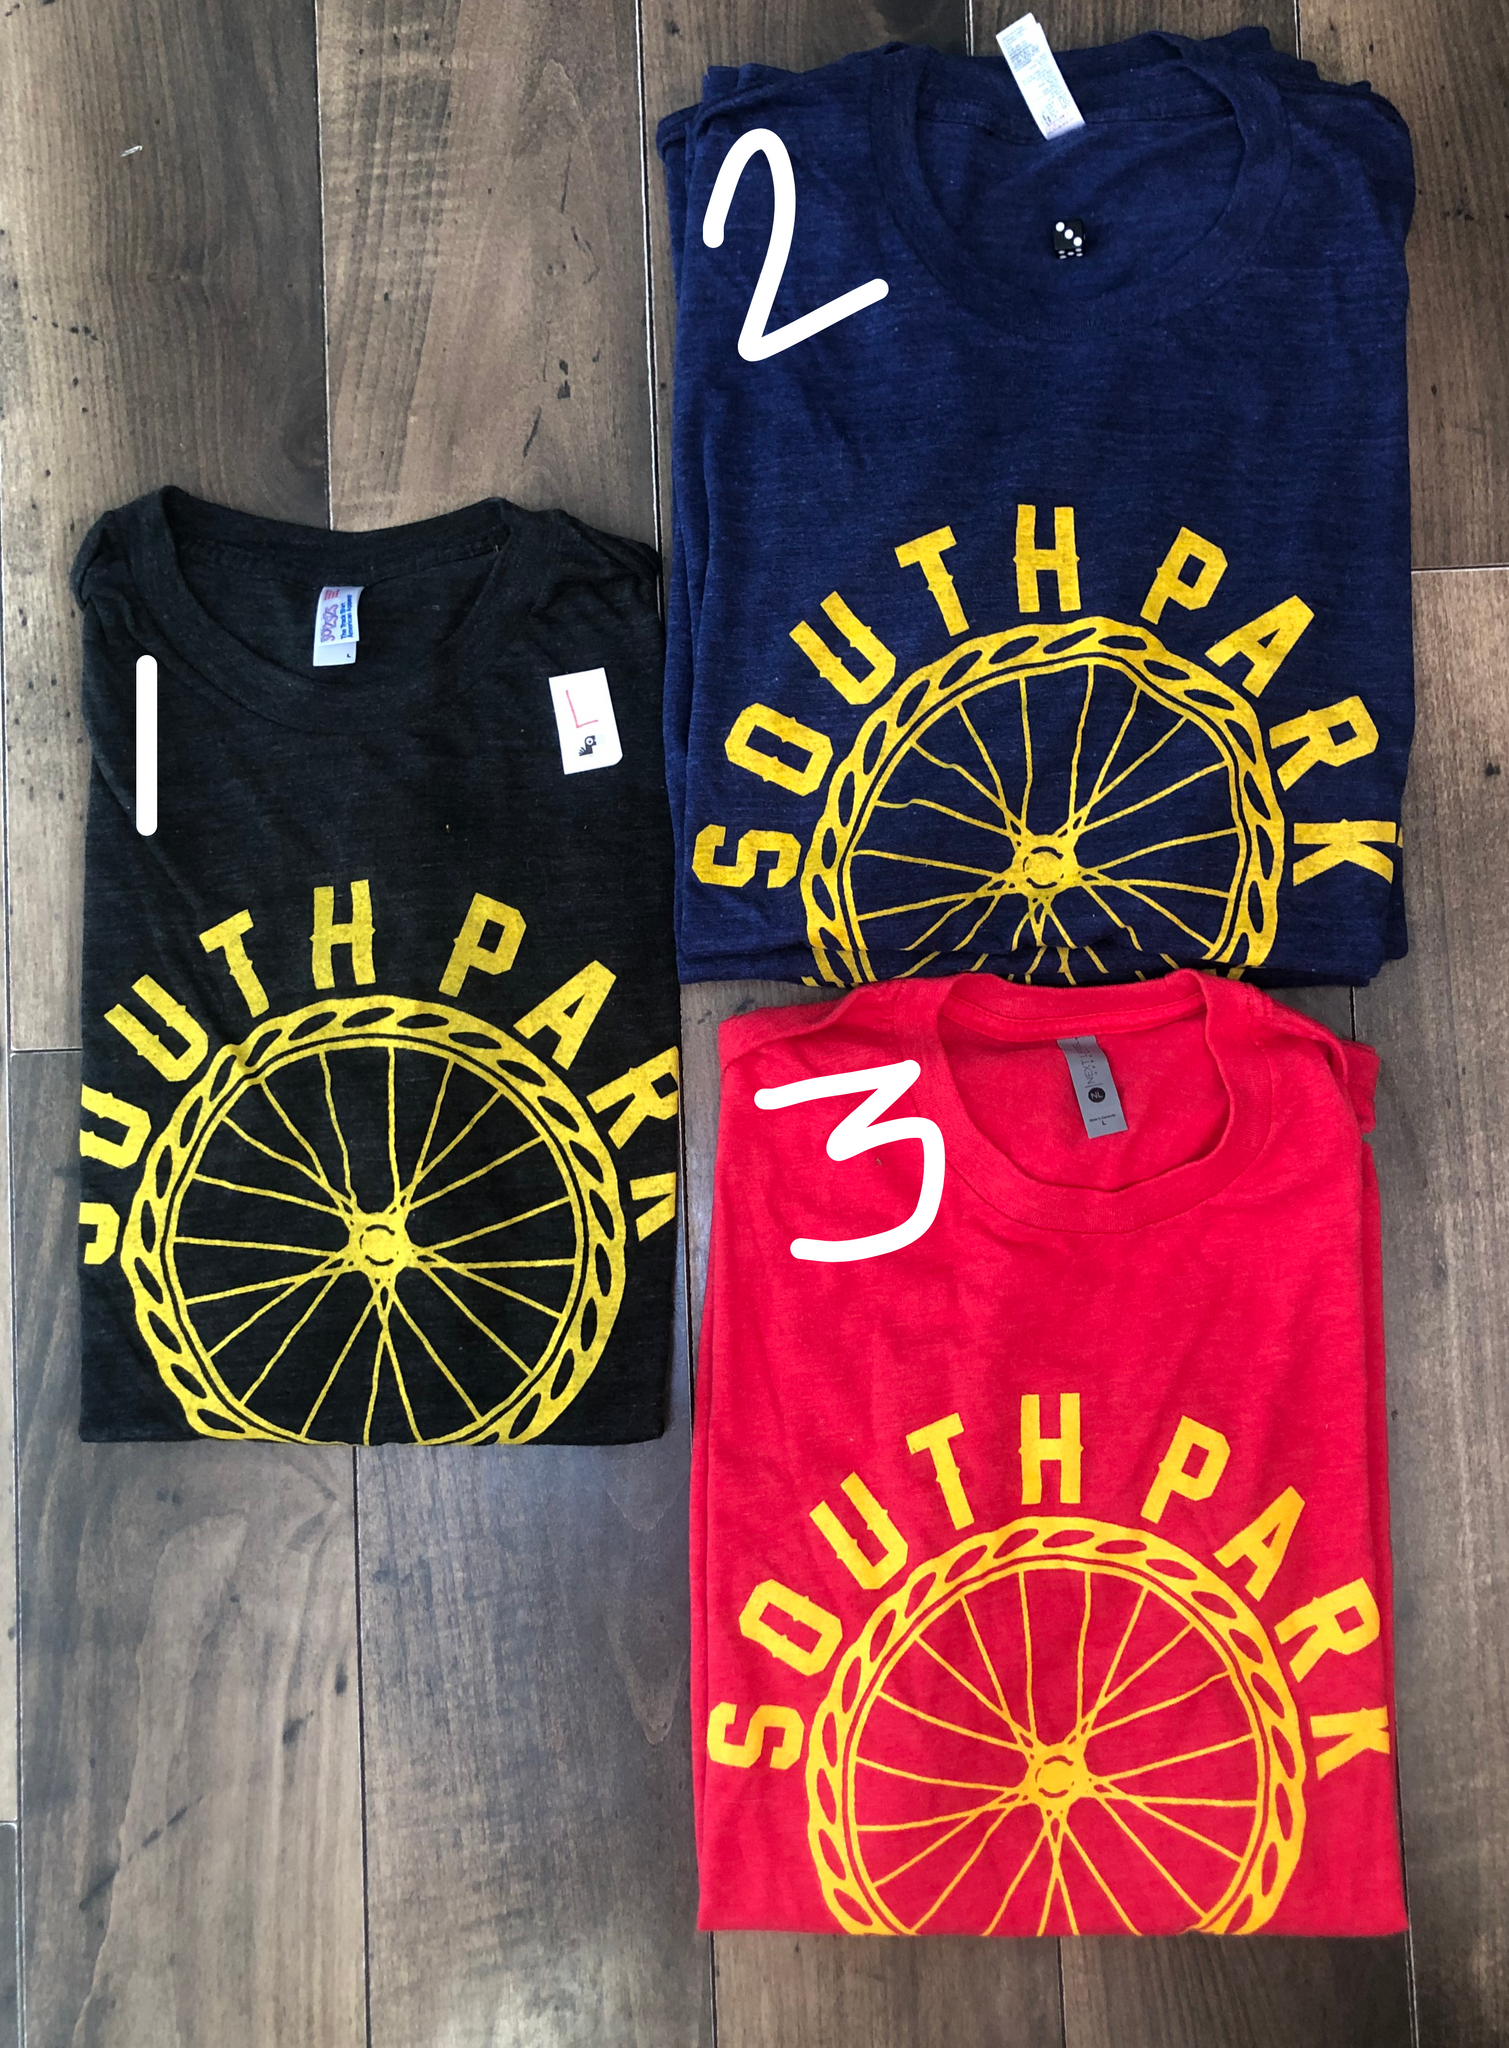 South Park Neighborhood T-Shirts